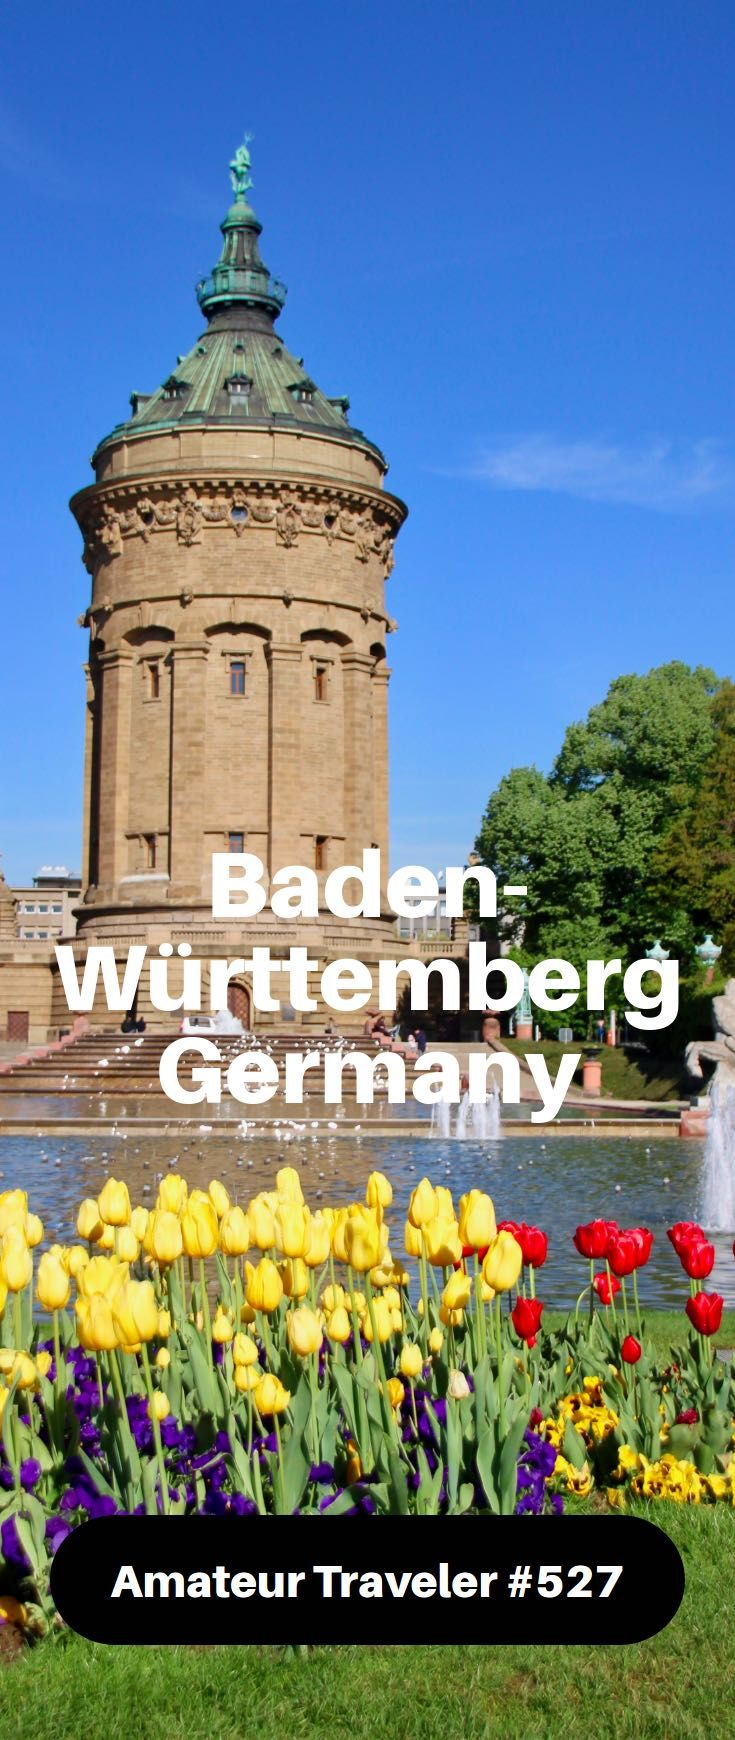 Hear about a bike trip to Mannheim, Schwetzingen, Heidelberg and Karlsruhe in Baden-Württemberg: palaces and gardens, and inventions like the bicycle & car.